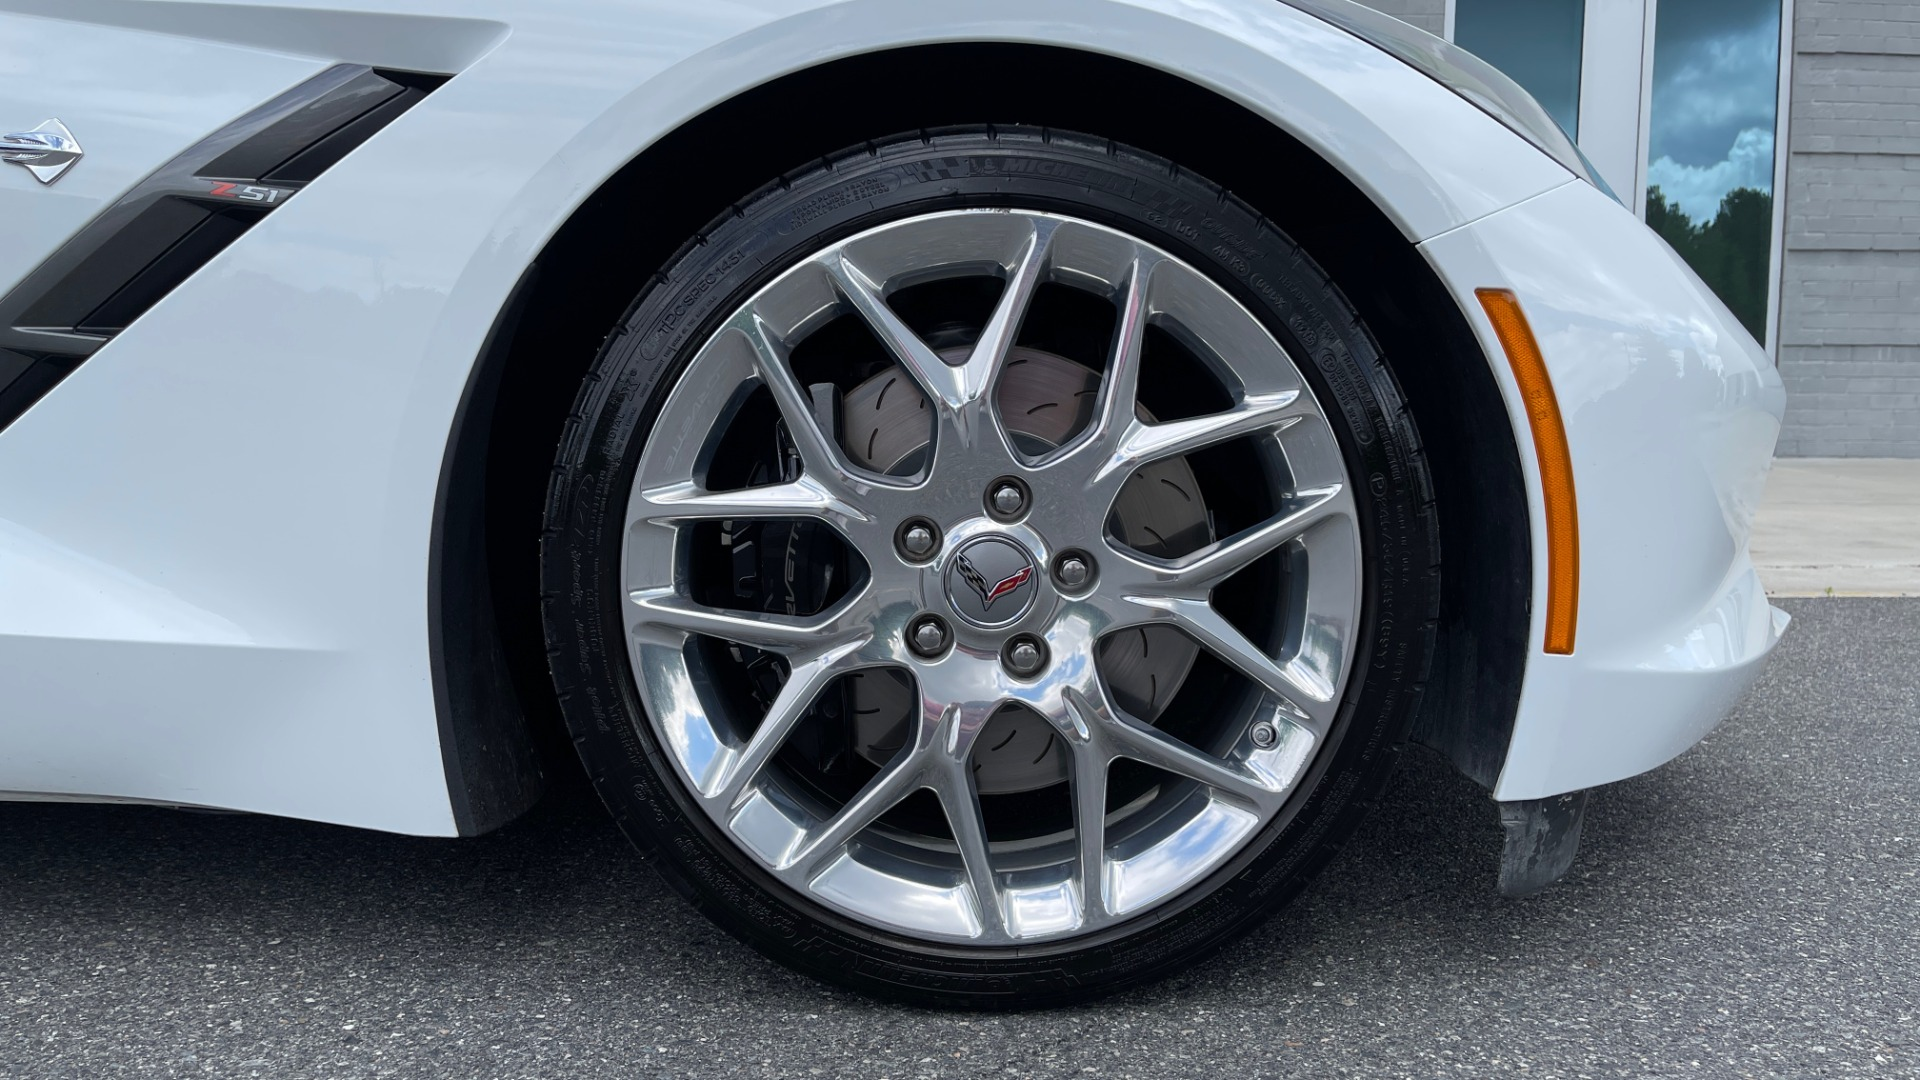 Used 2016 Chevrolet CORVETTE C7 STINGRAY COUPE Z51 3LT / NAV / PERF TRACTION MGMT / REARVIEW for sale Sold at Formula Imports in Charlotte NC 28227 70